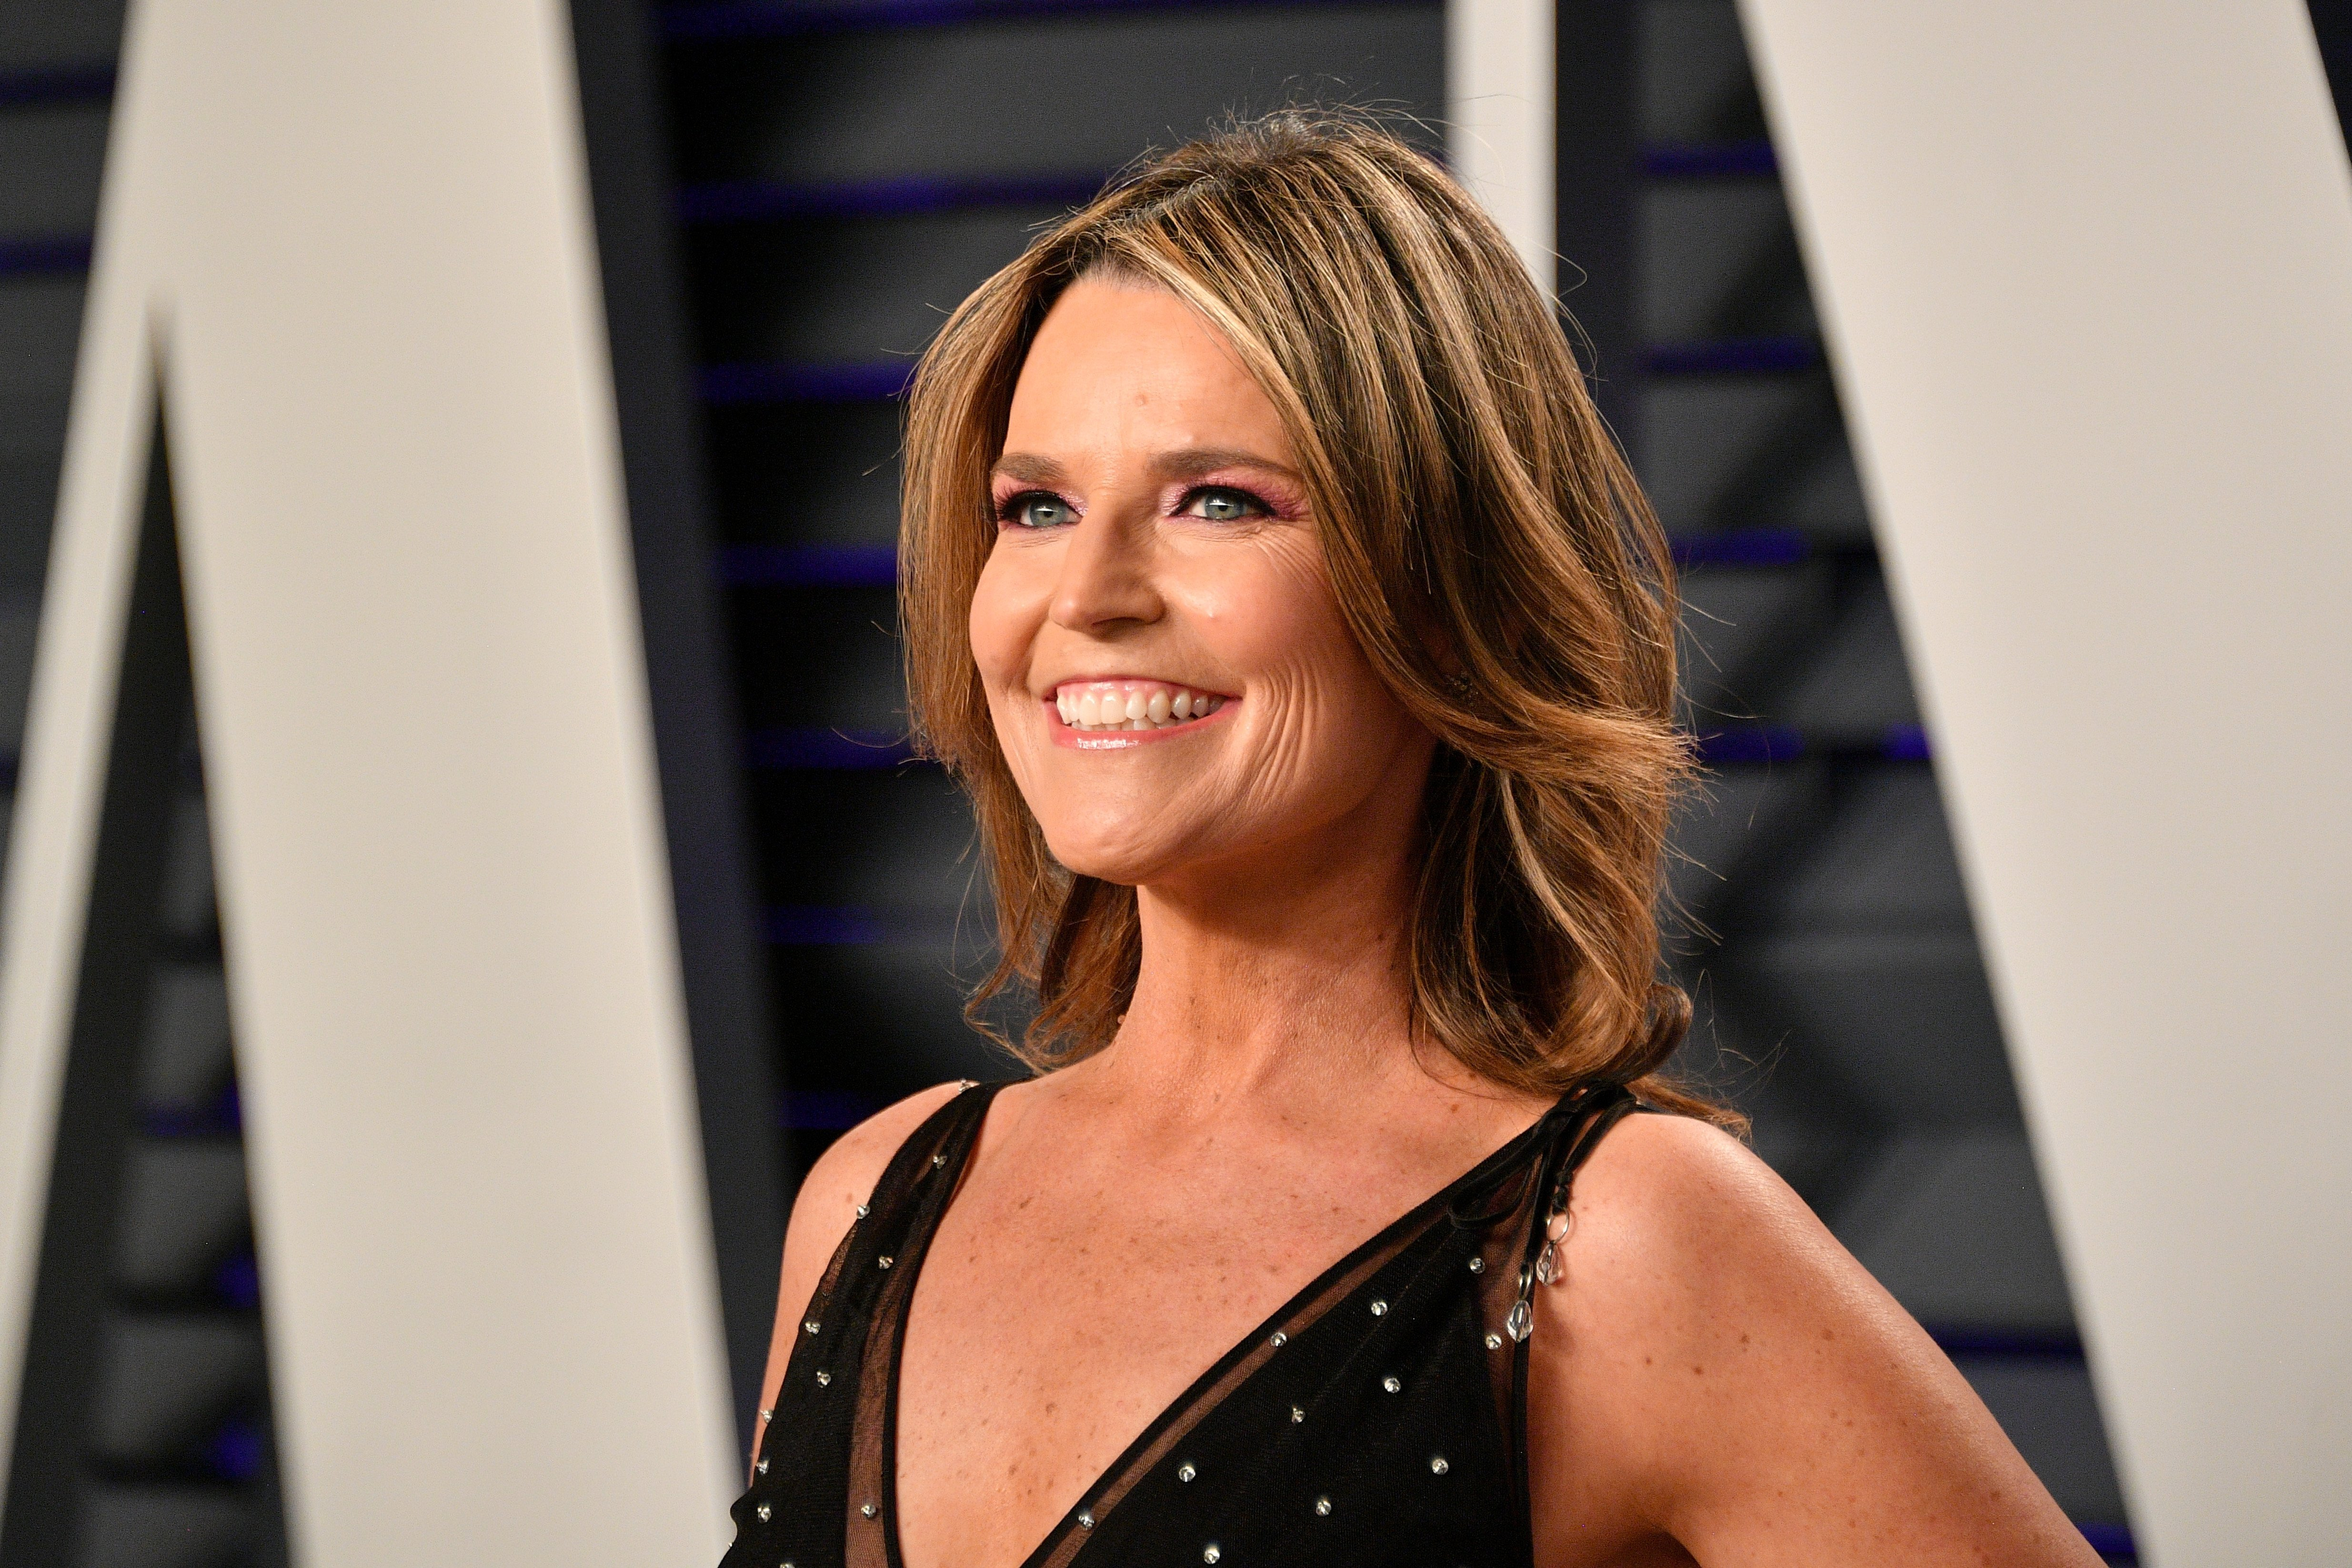 Savannah Guthrie during the 2019 Vanity Fair Oscar Party. | Source: Getty Images